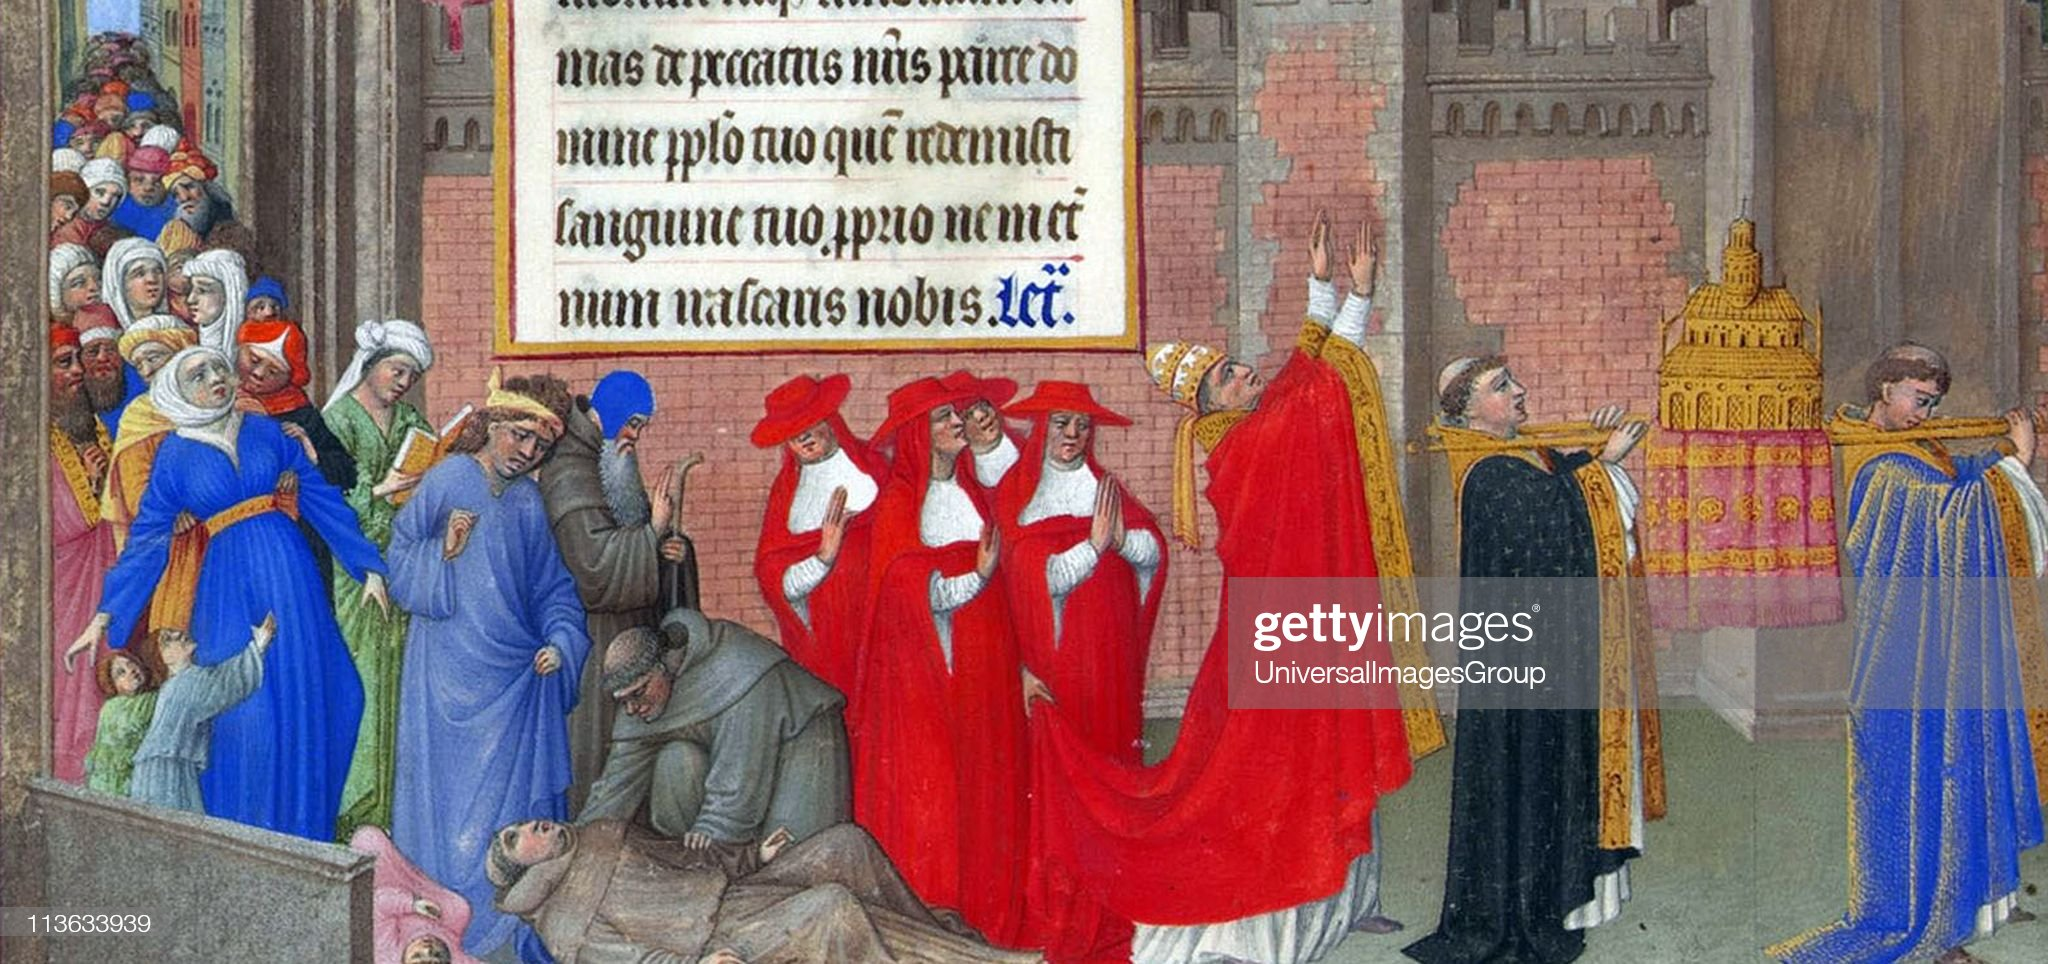 Pope Gregory I during the Great Plague. in 589 when plague struck Rome. With the death of Pope Pelagius, who was stricken by the plague, all of Rome acclaimed Gregory as Pope. He fled to a cave, but the people found him and brought him back to Rome, where... : News Photo